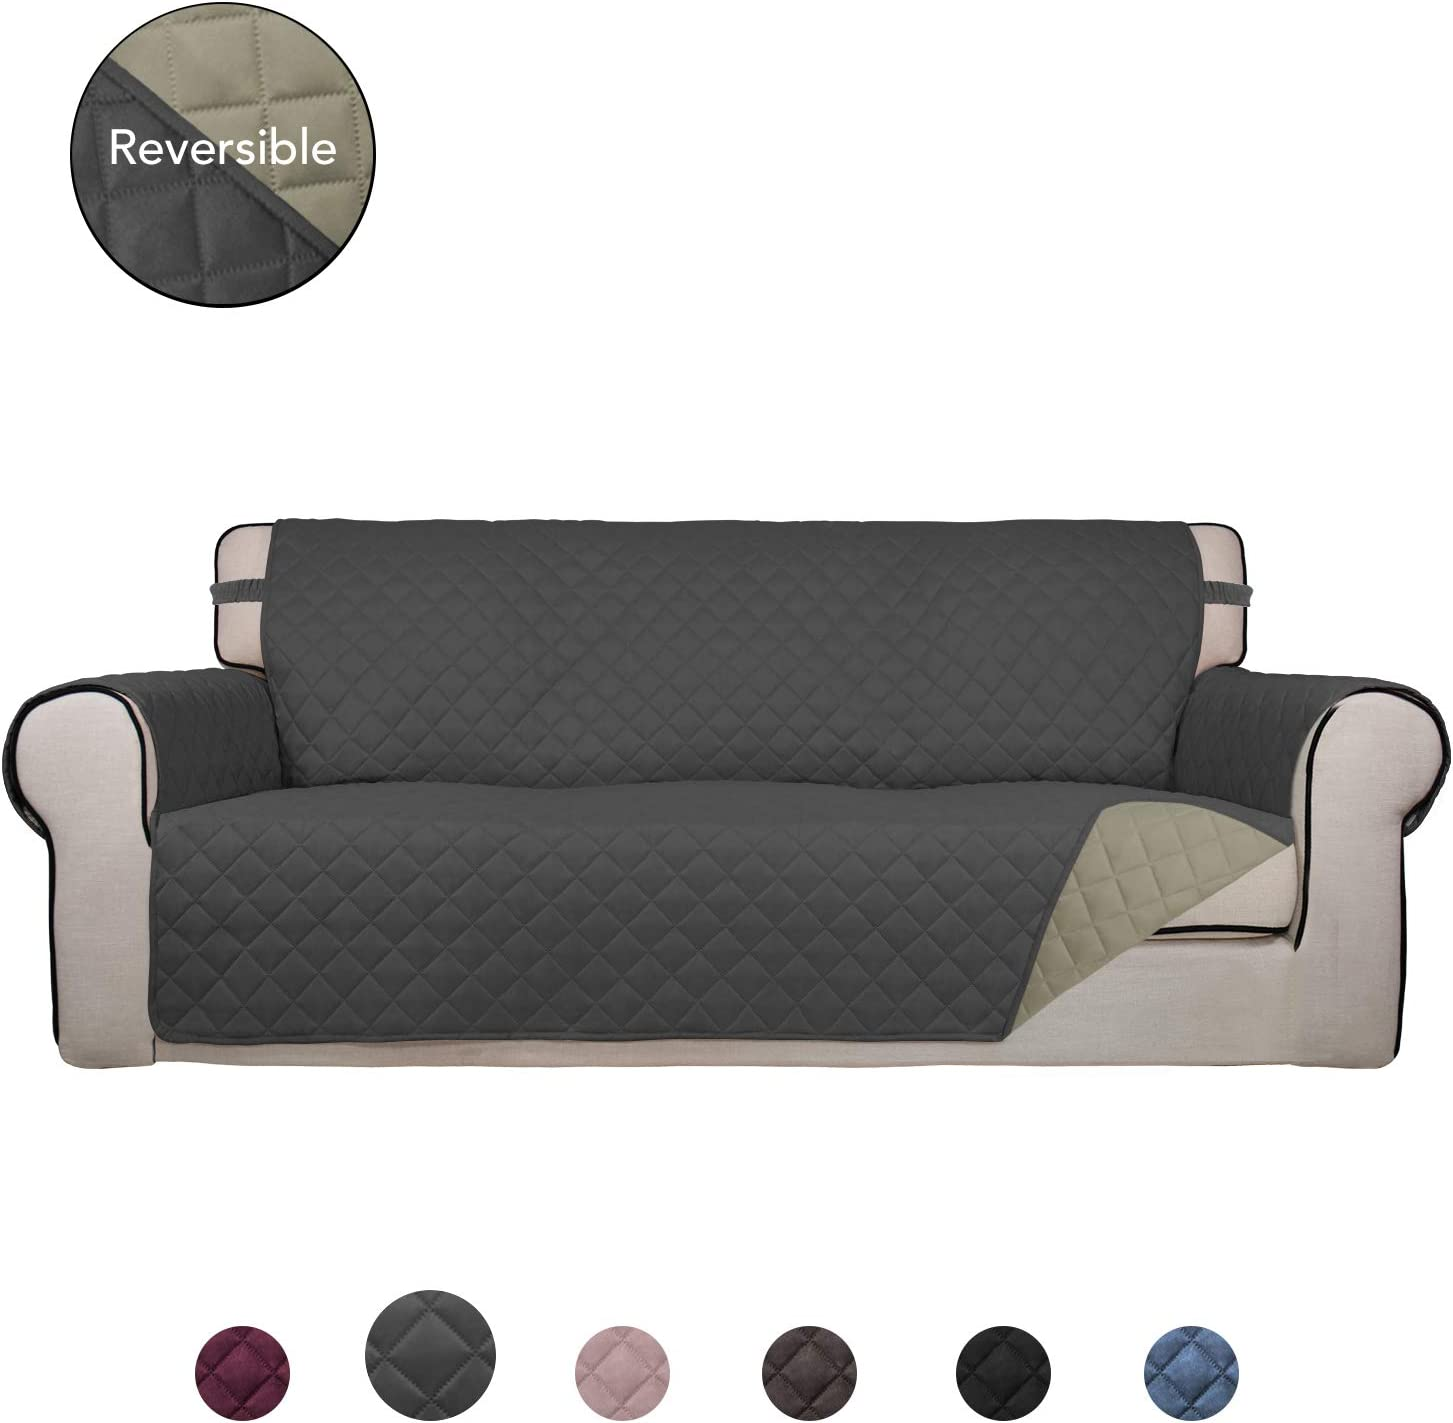 PureFit Reversible Quilted Sofa Cover, Water Resistant Slipcover Furniture Protector, Washable Couch Cover with Non Slip Foam and Elastic Straps for Kids, Pets (Oversized Sofa, Dark Gray/Beige)